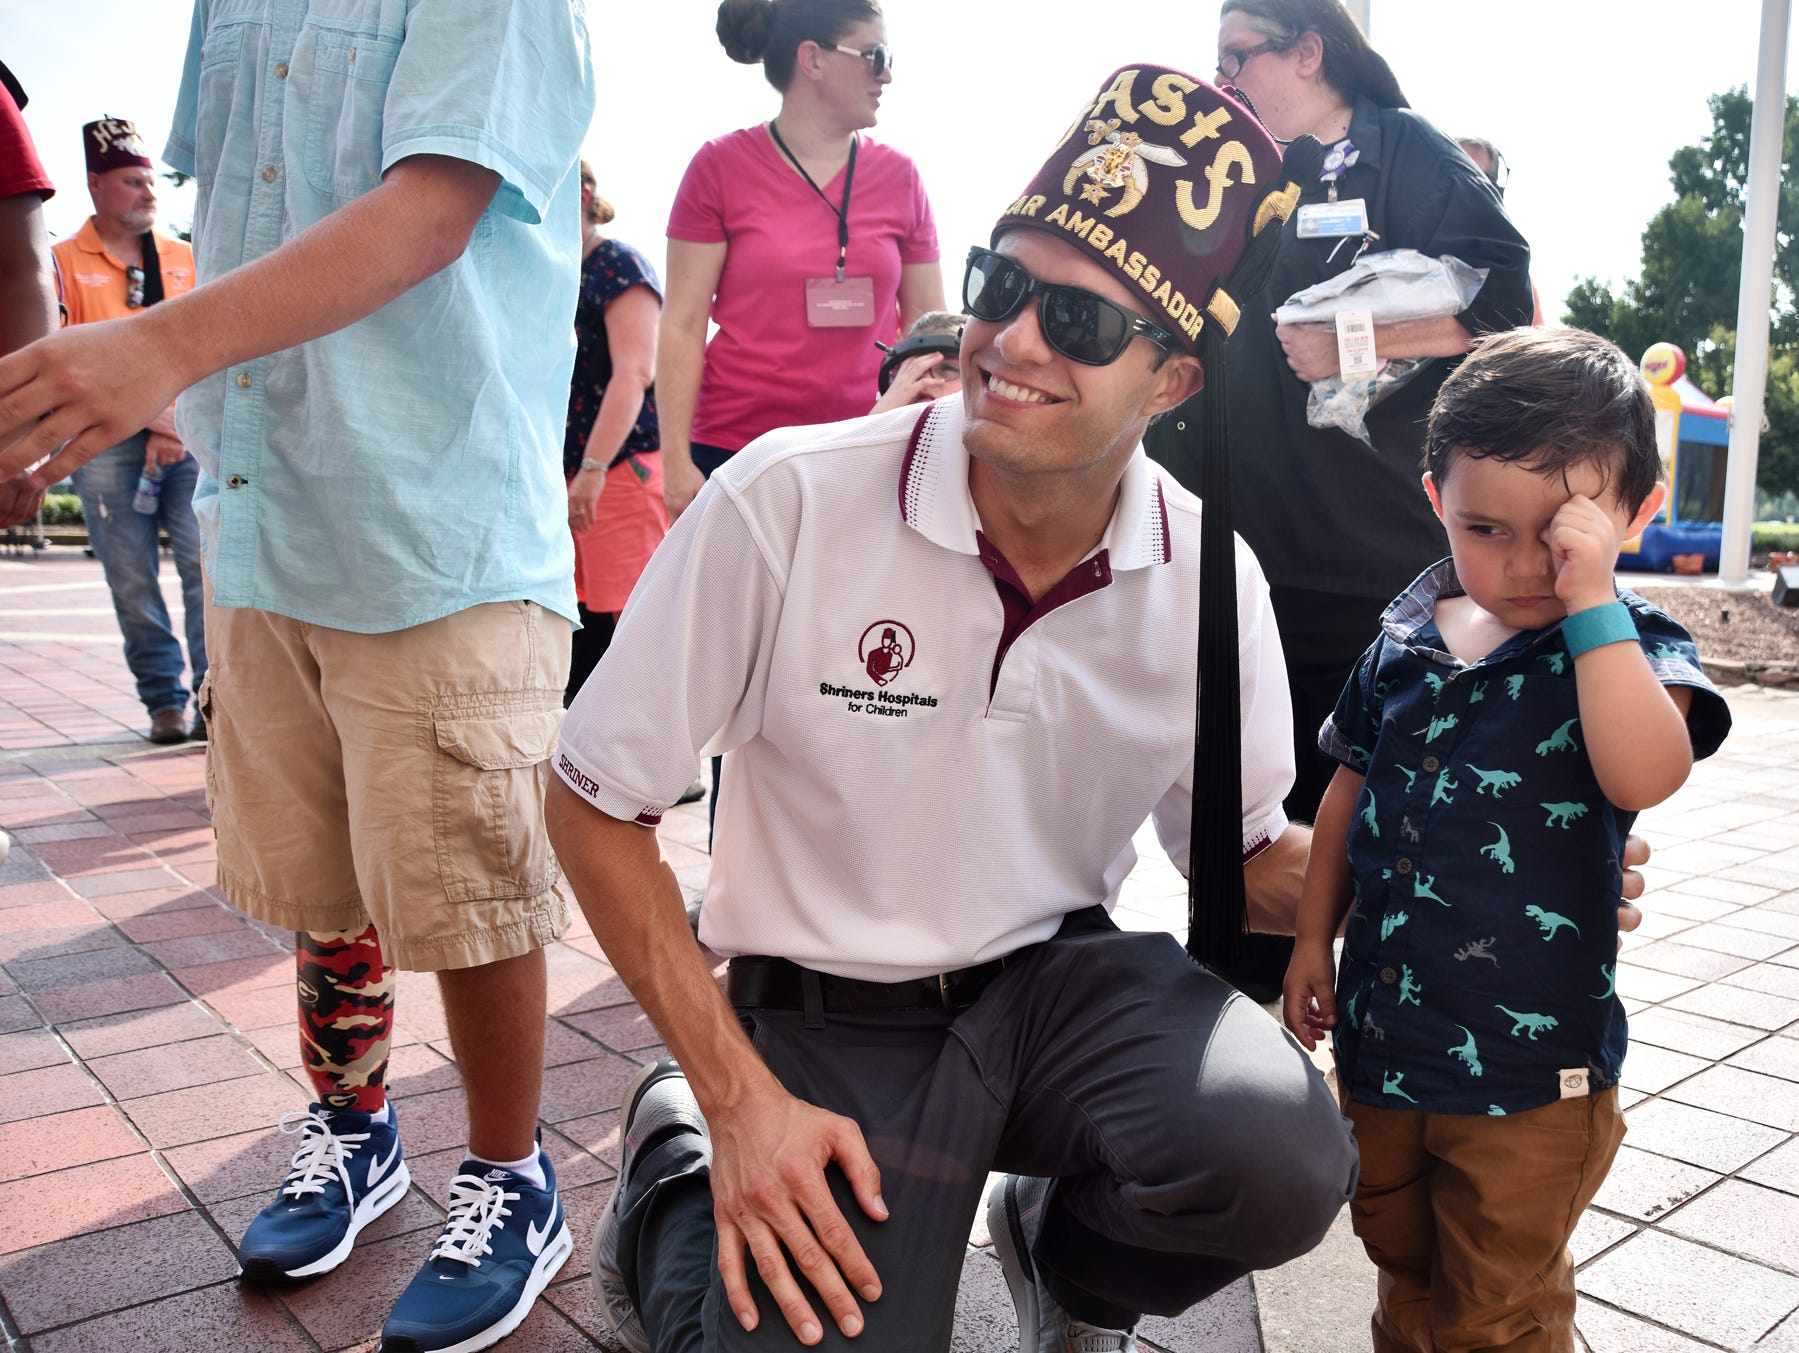 NASCAR driver David Ragan poses for a photo with Ethan Horseman, 2, at the  Shriners Hospital for Children in Greenville on August 15, 2018.